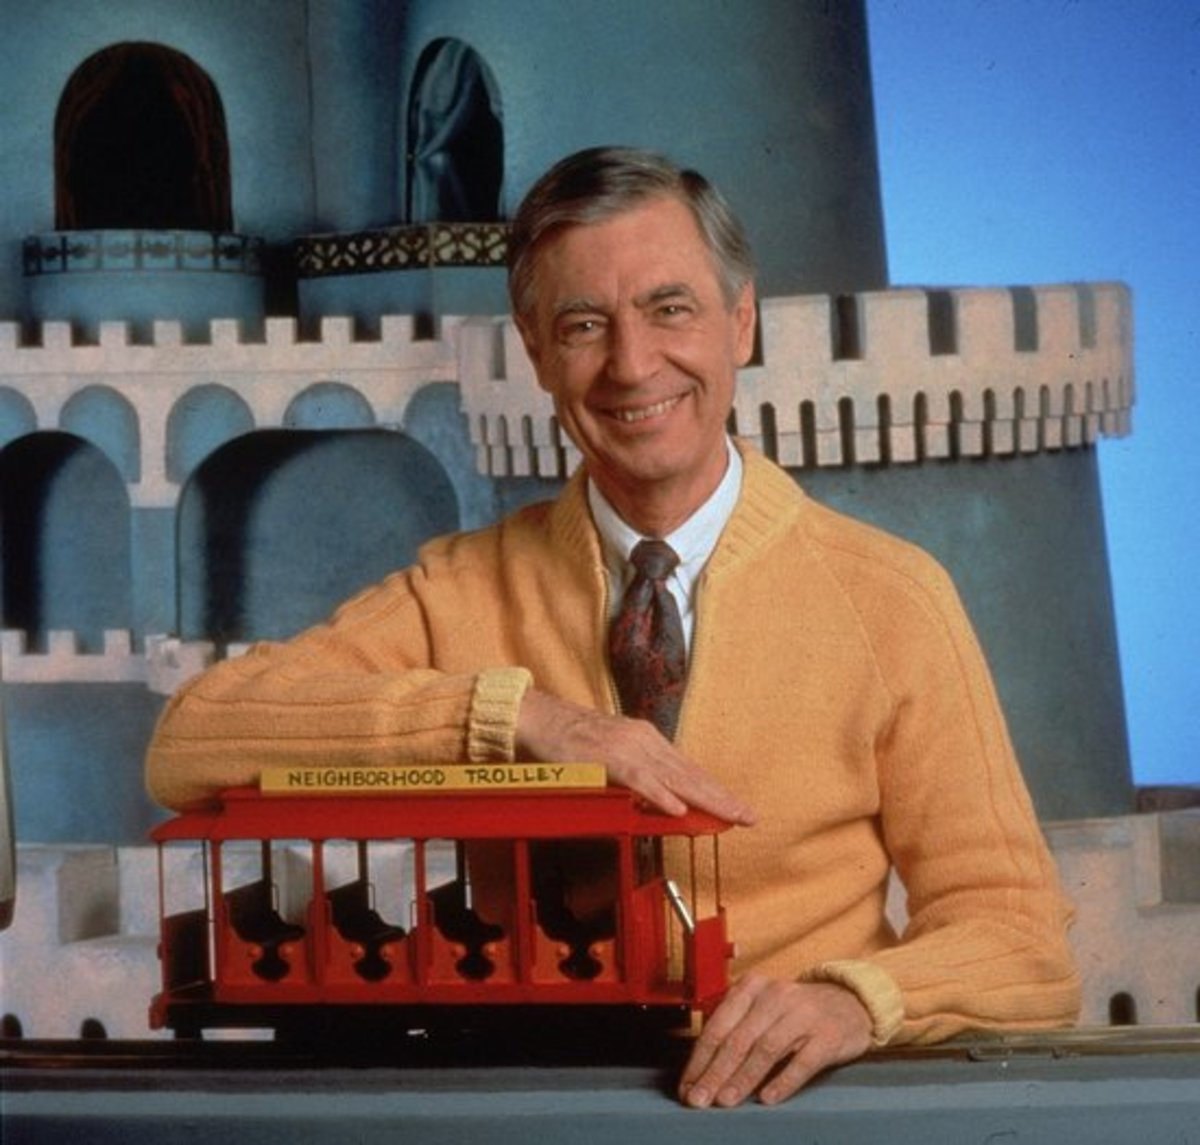 Fred Rogers: Creator of Mister Rogers' Neighborhood